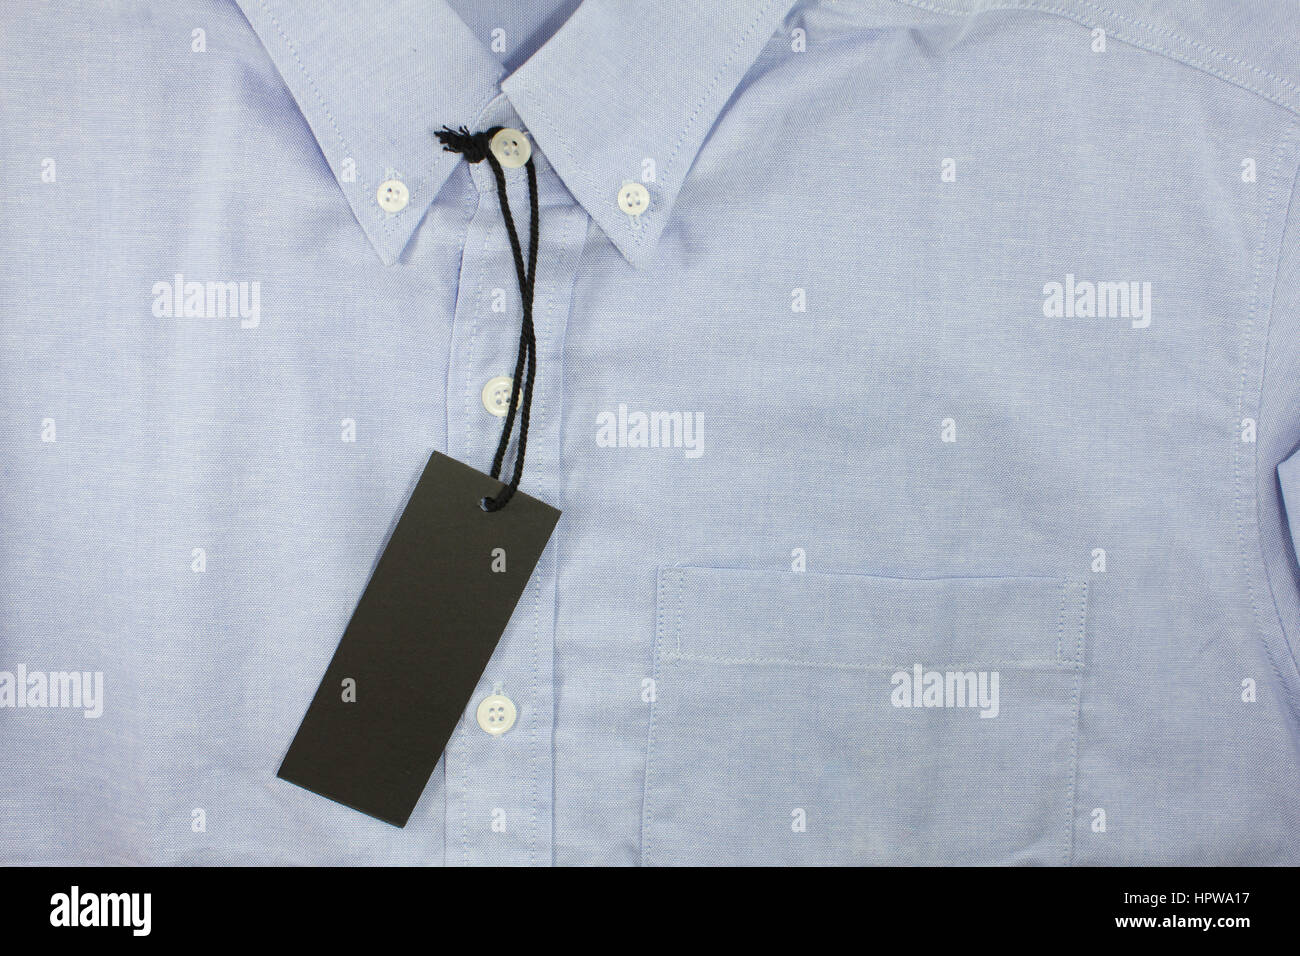 47ae62c8 black blank price tag on formal shirt · Kampanat Soontorn / Alamy Stock  Photo